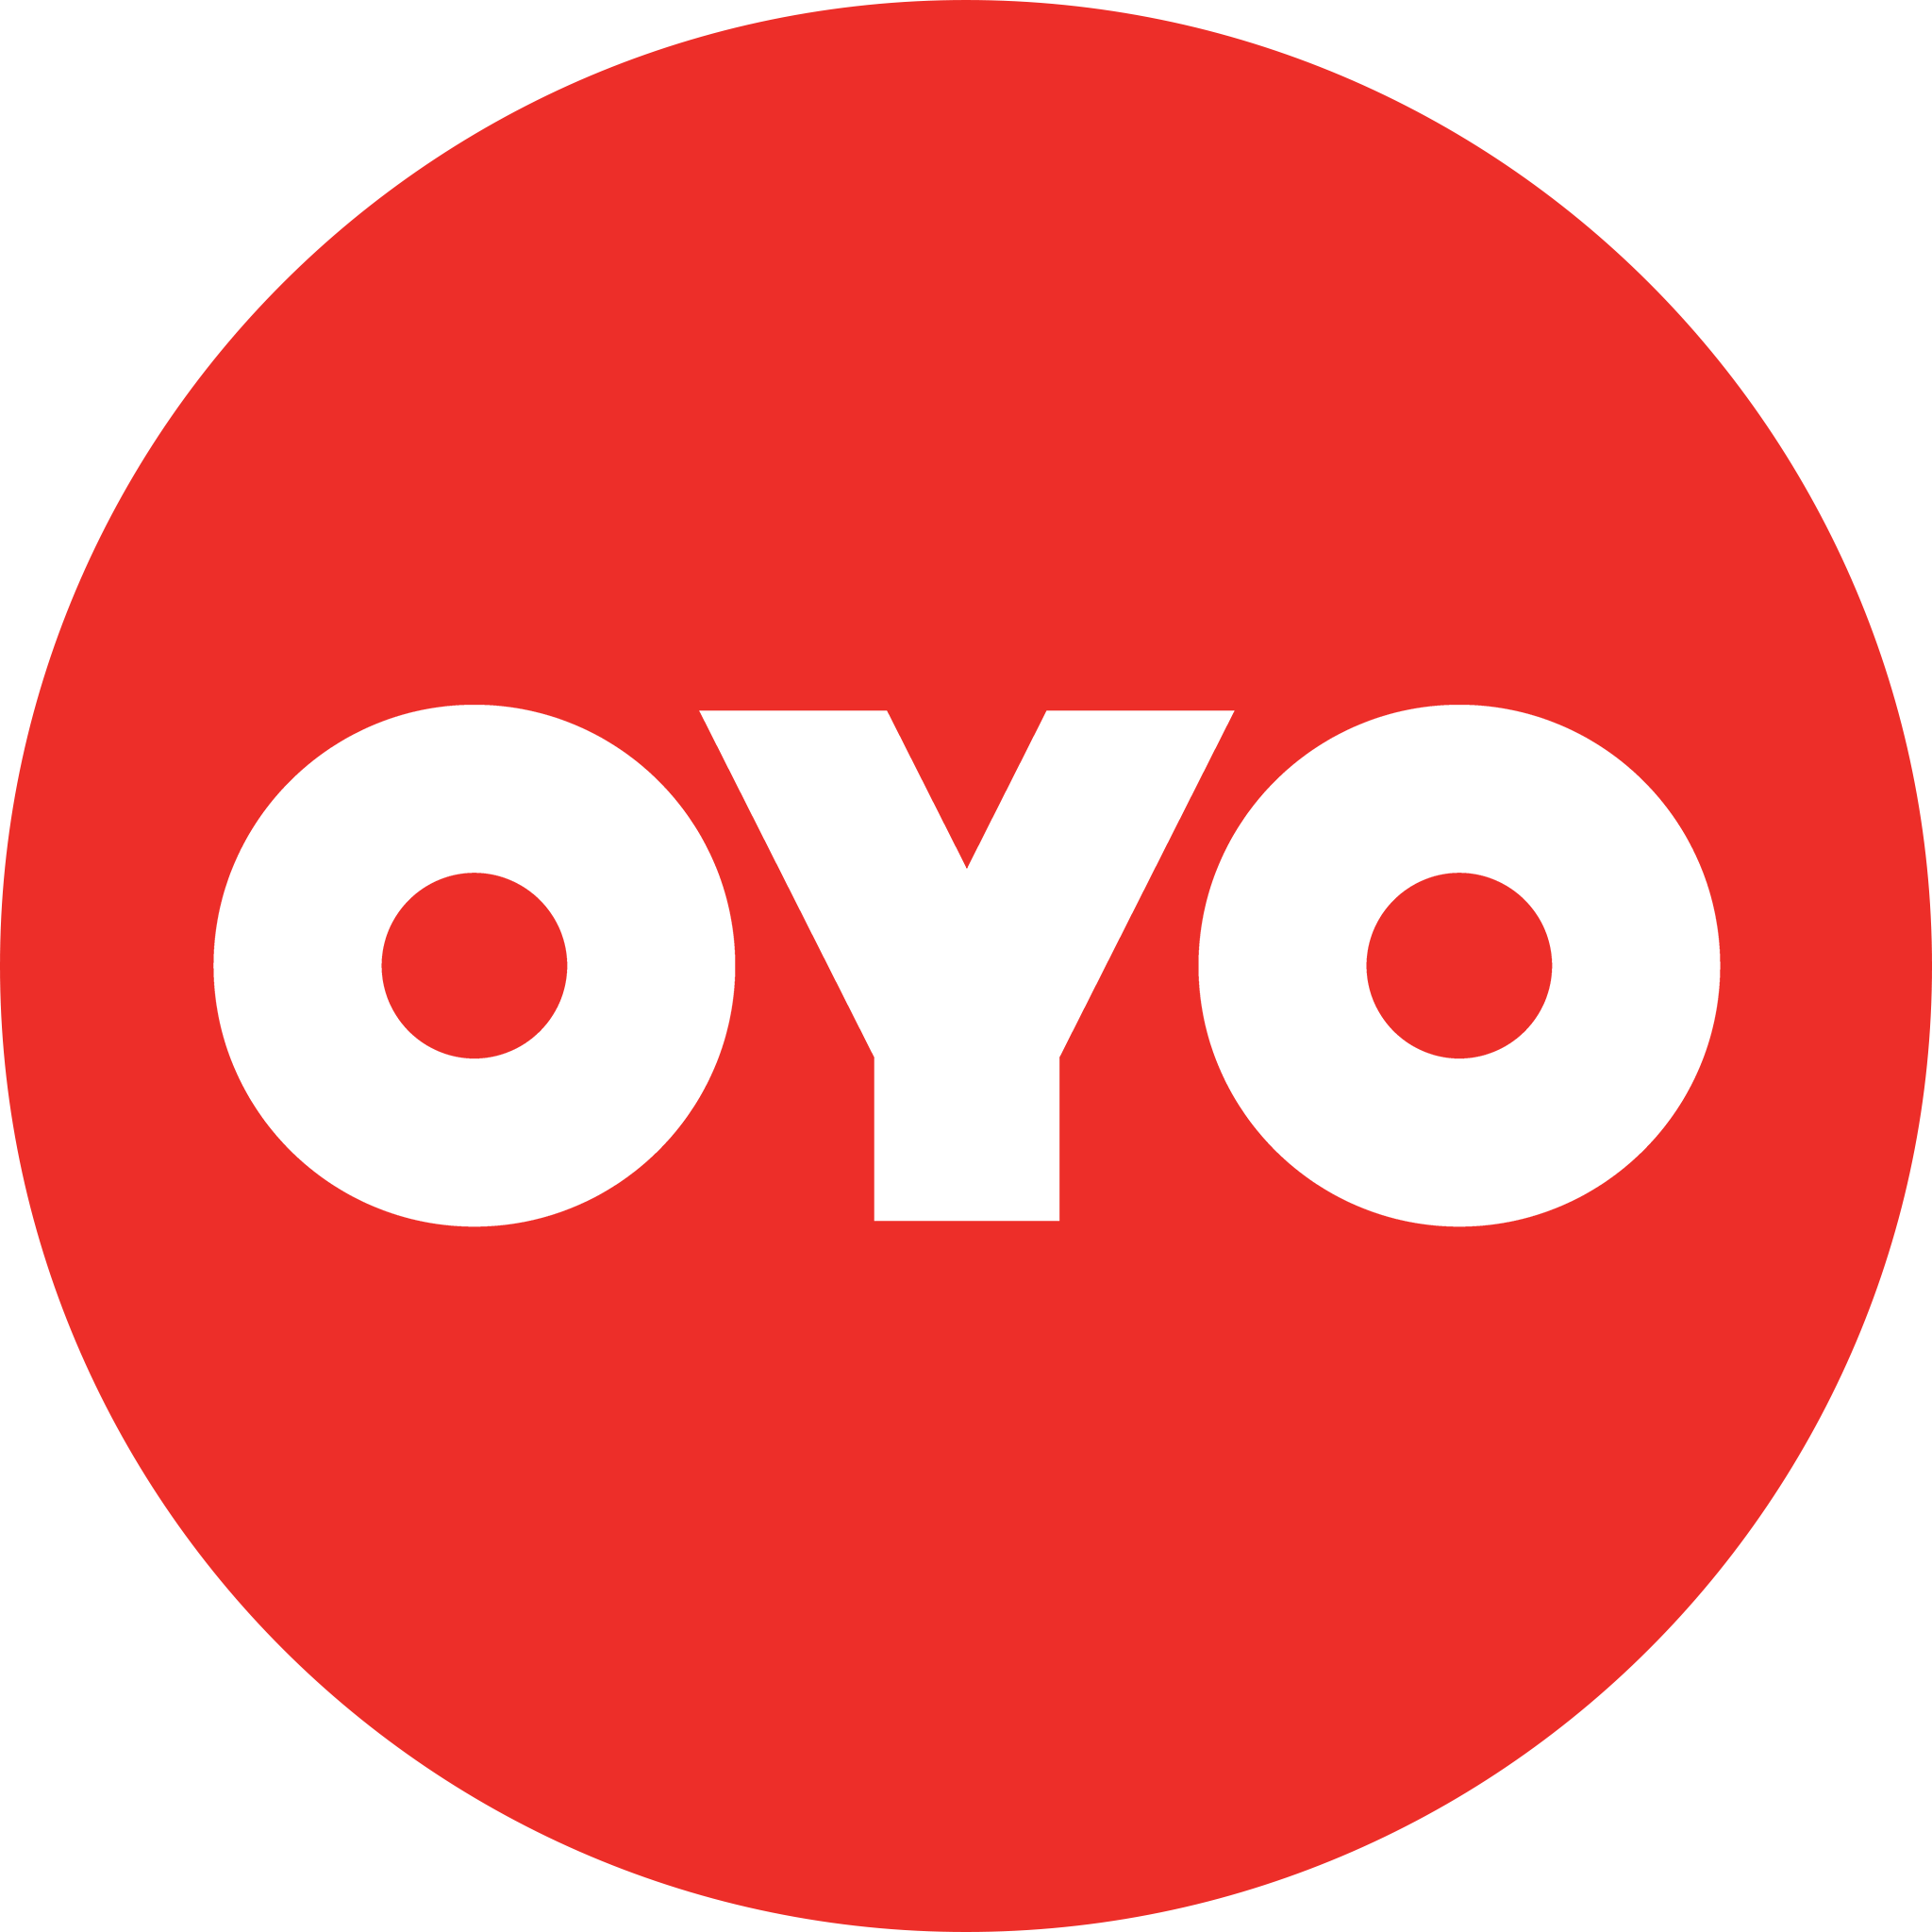 OYO Rooms Logo PNG Image Free Download searchpng.com.